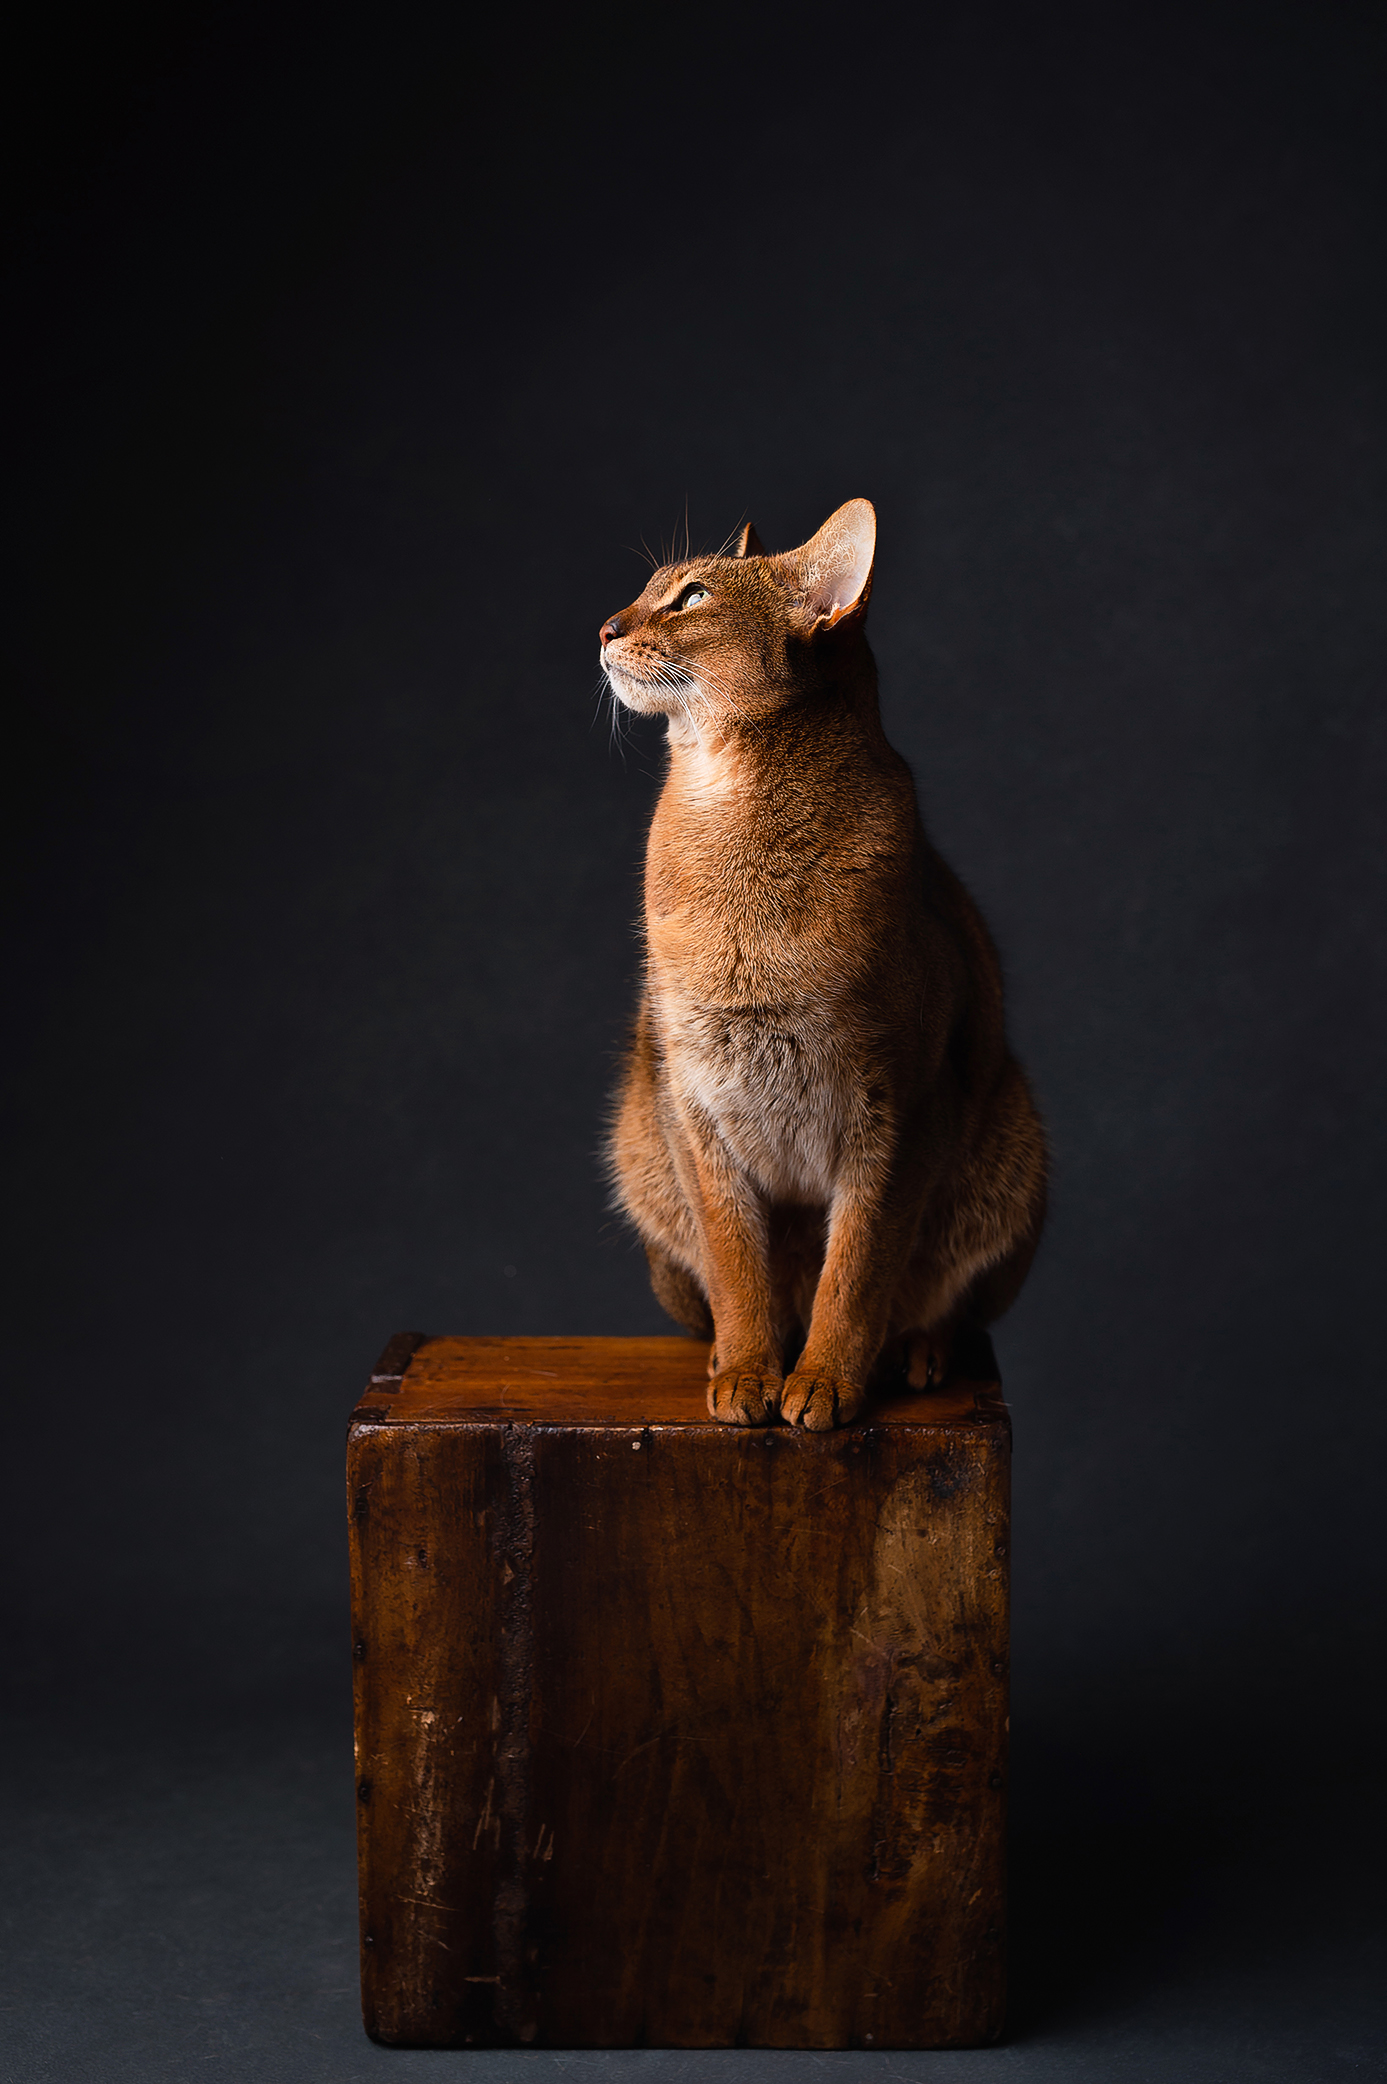 Abyssinian cat on the wooden box looking towards the light